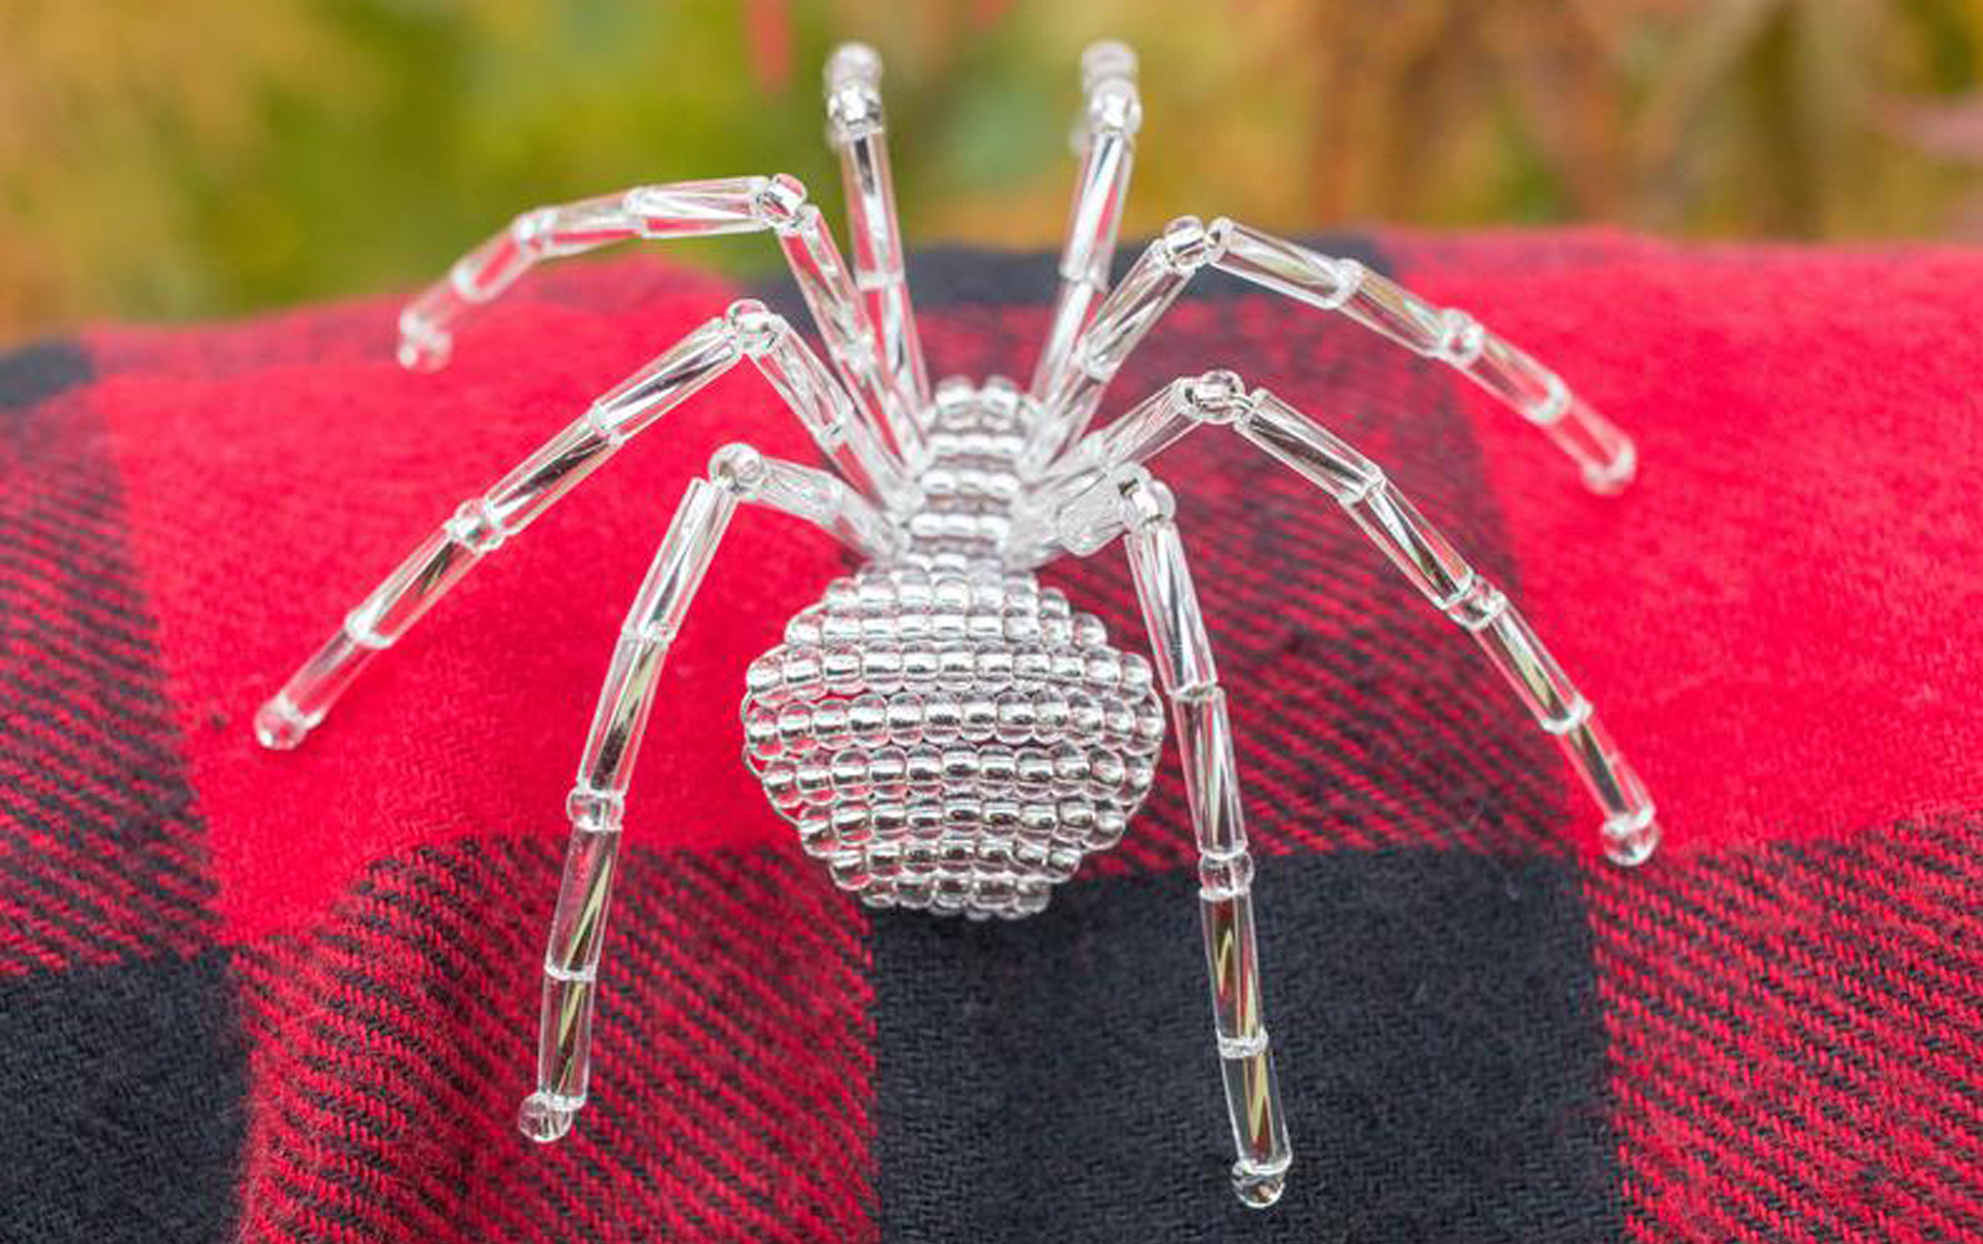 Glass spider Christmas ornament on a red and black checkered blanket